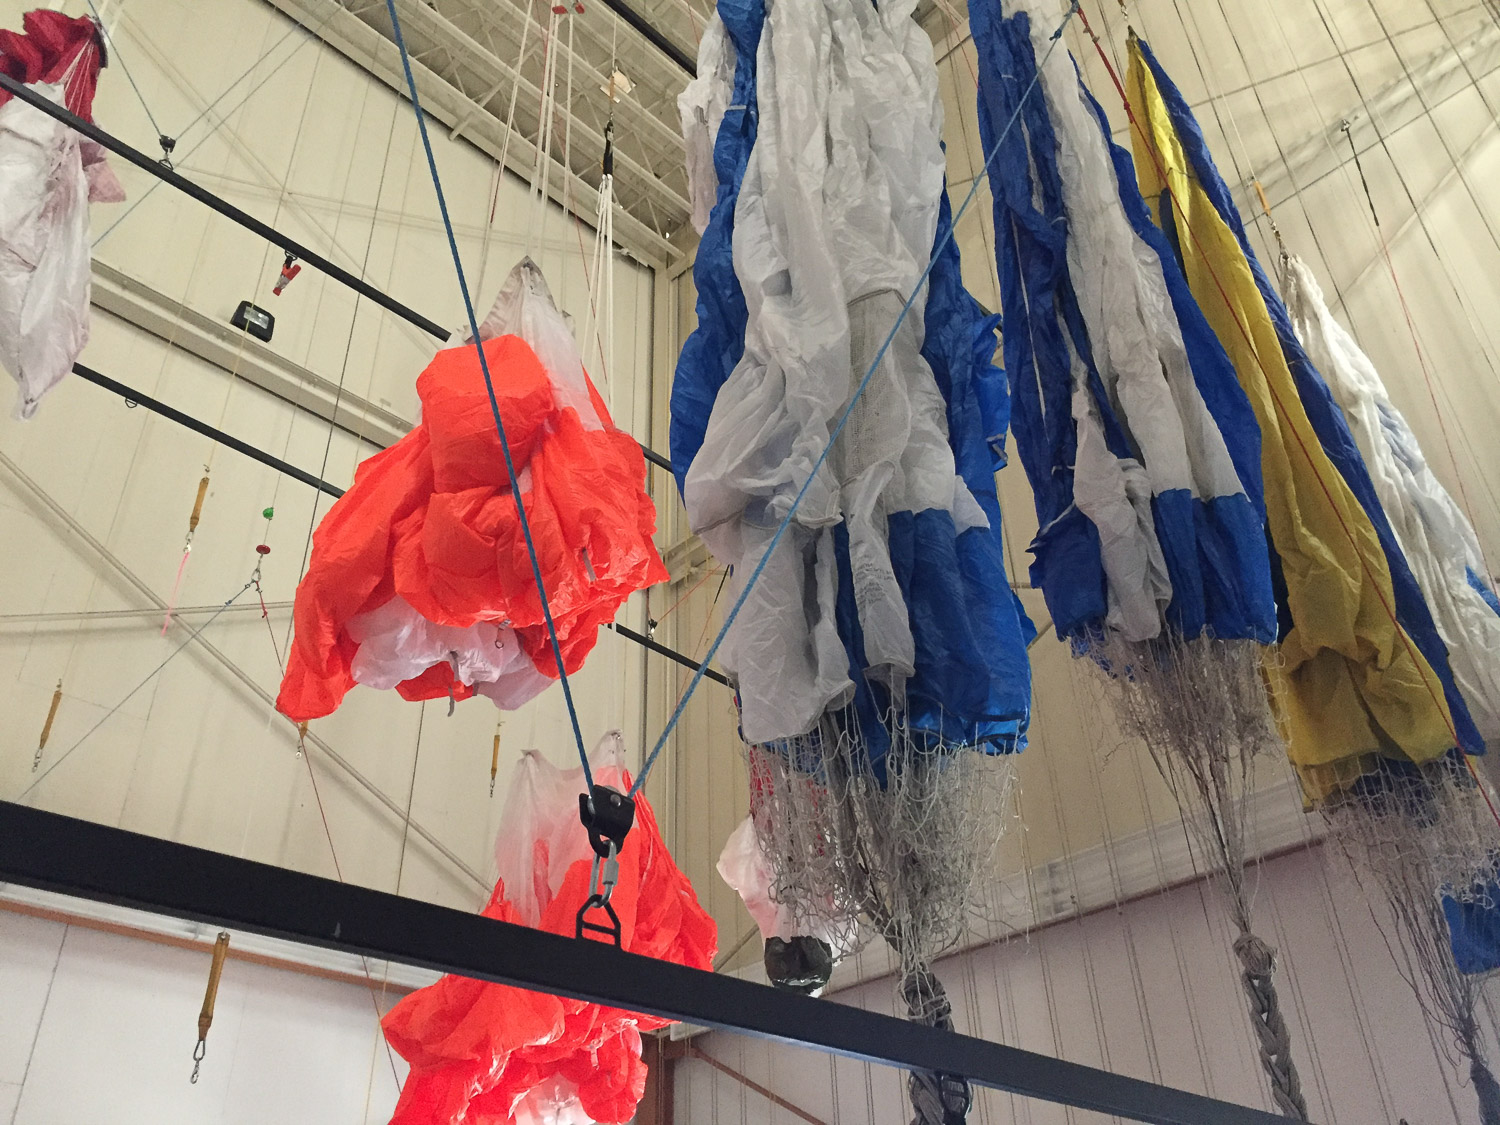 Parachutes hanging for inspection